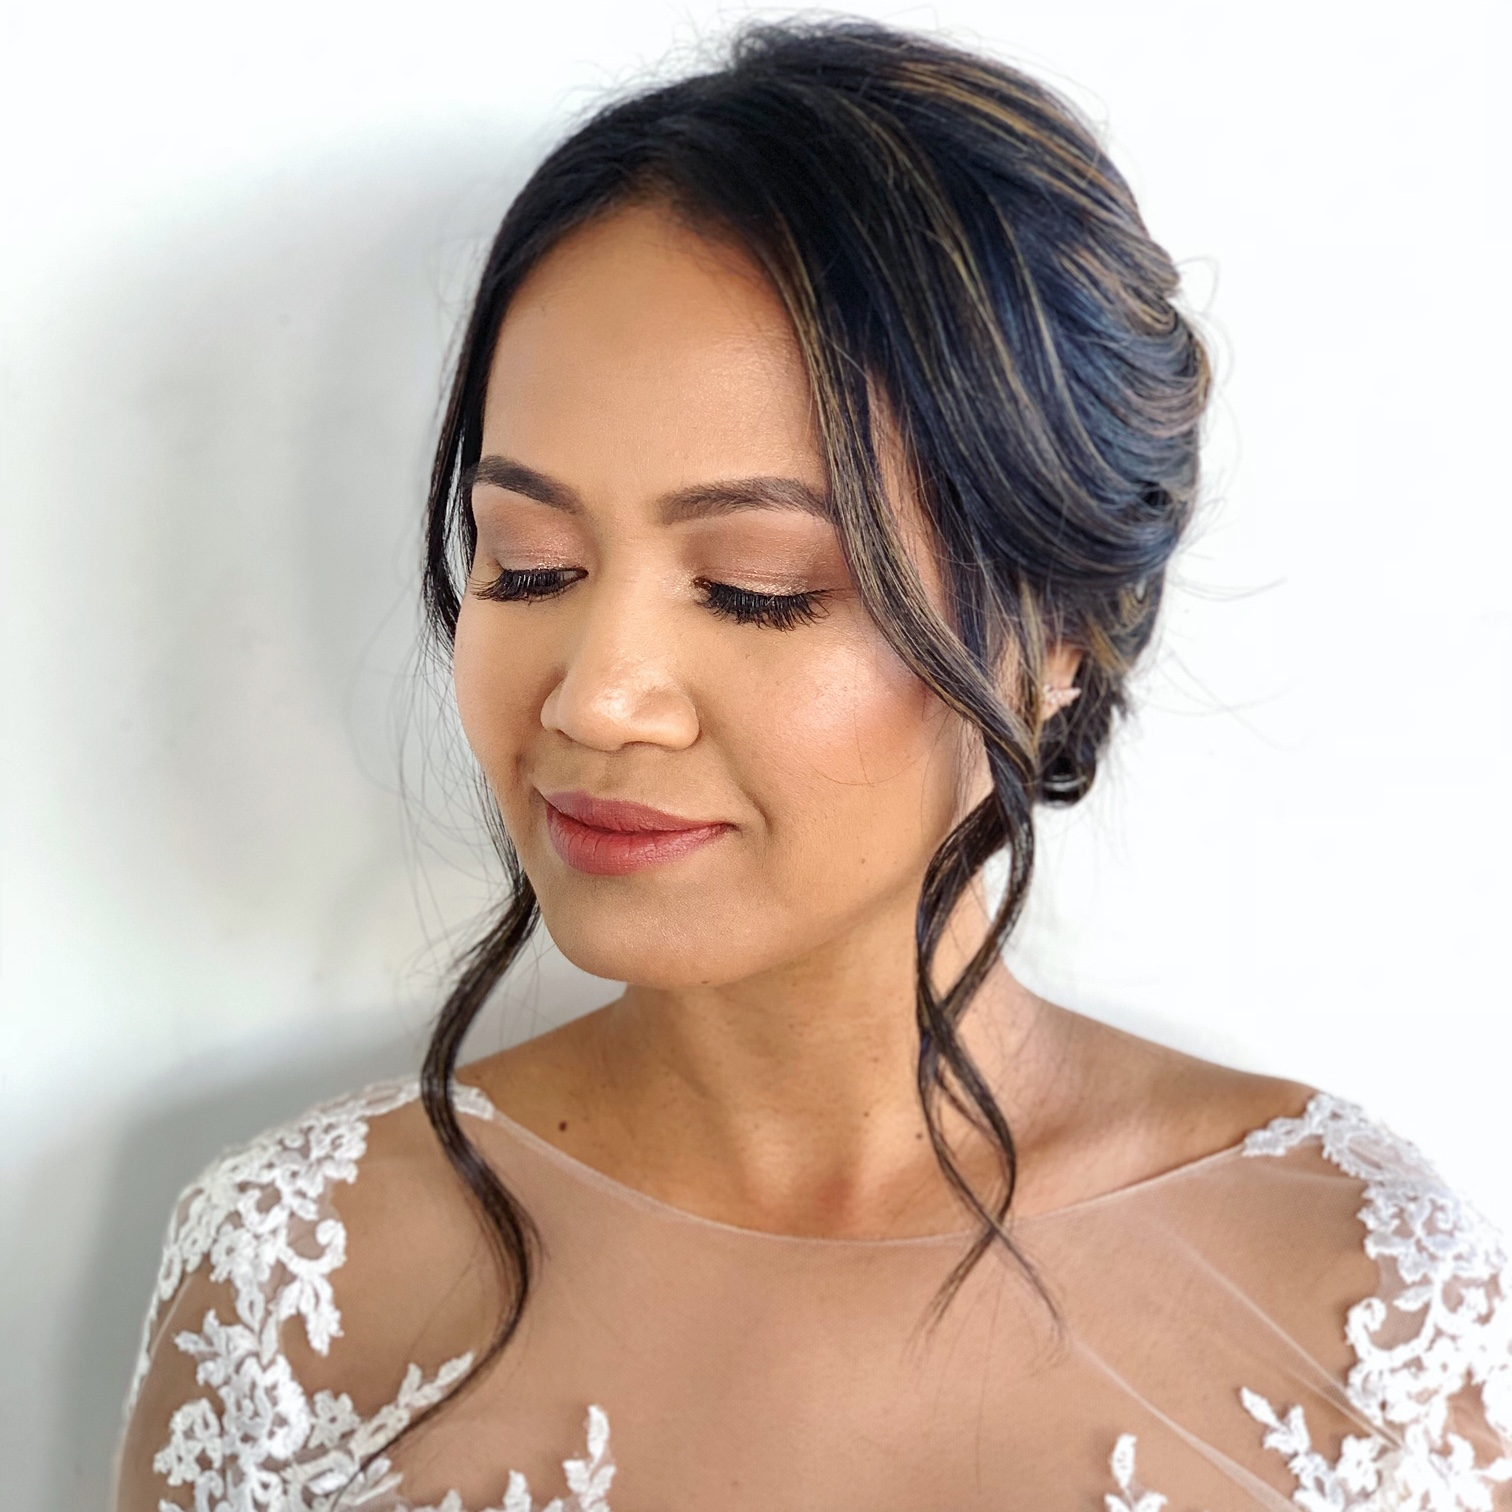 Bridal Client | Hair: Rofyah Le | Makeup by Ashley Tani